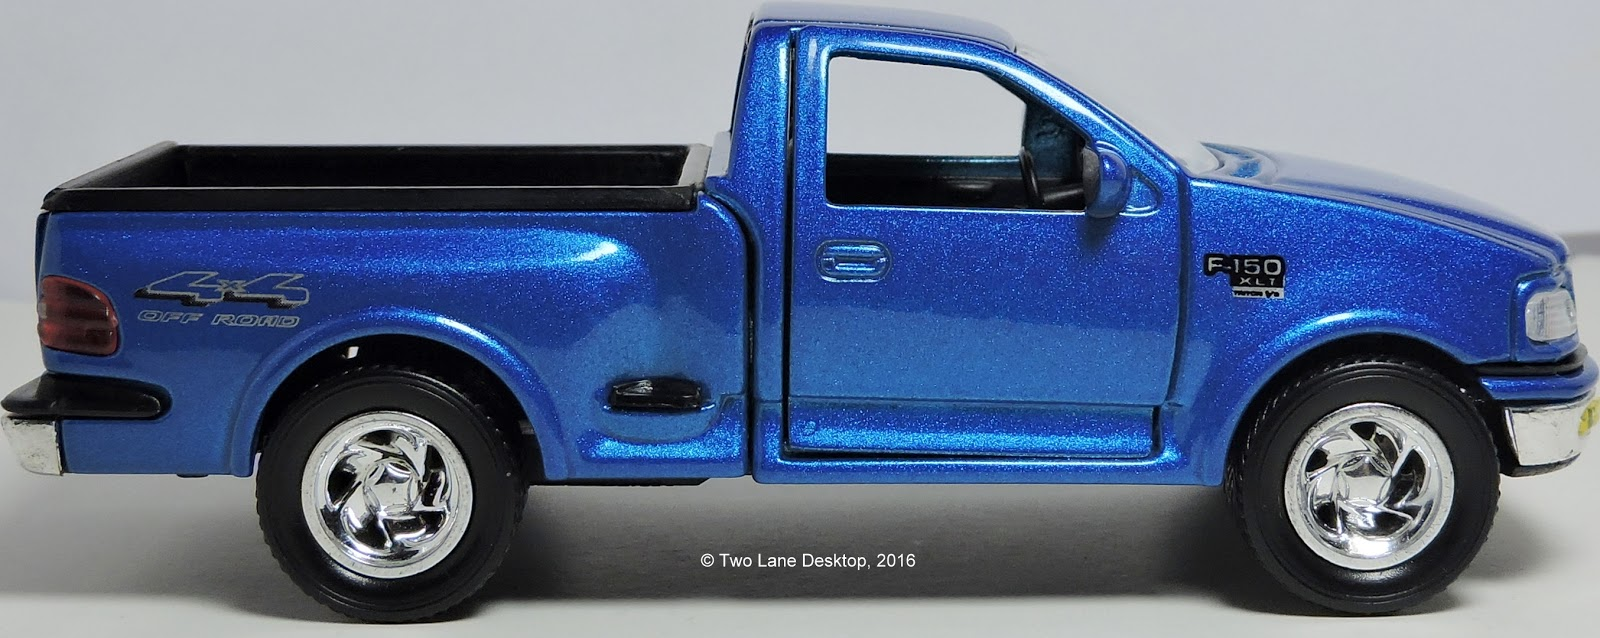 Here s an off shoot pullback brand that introduced two nicely done 1997 ford f 150 pickups